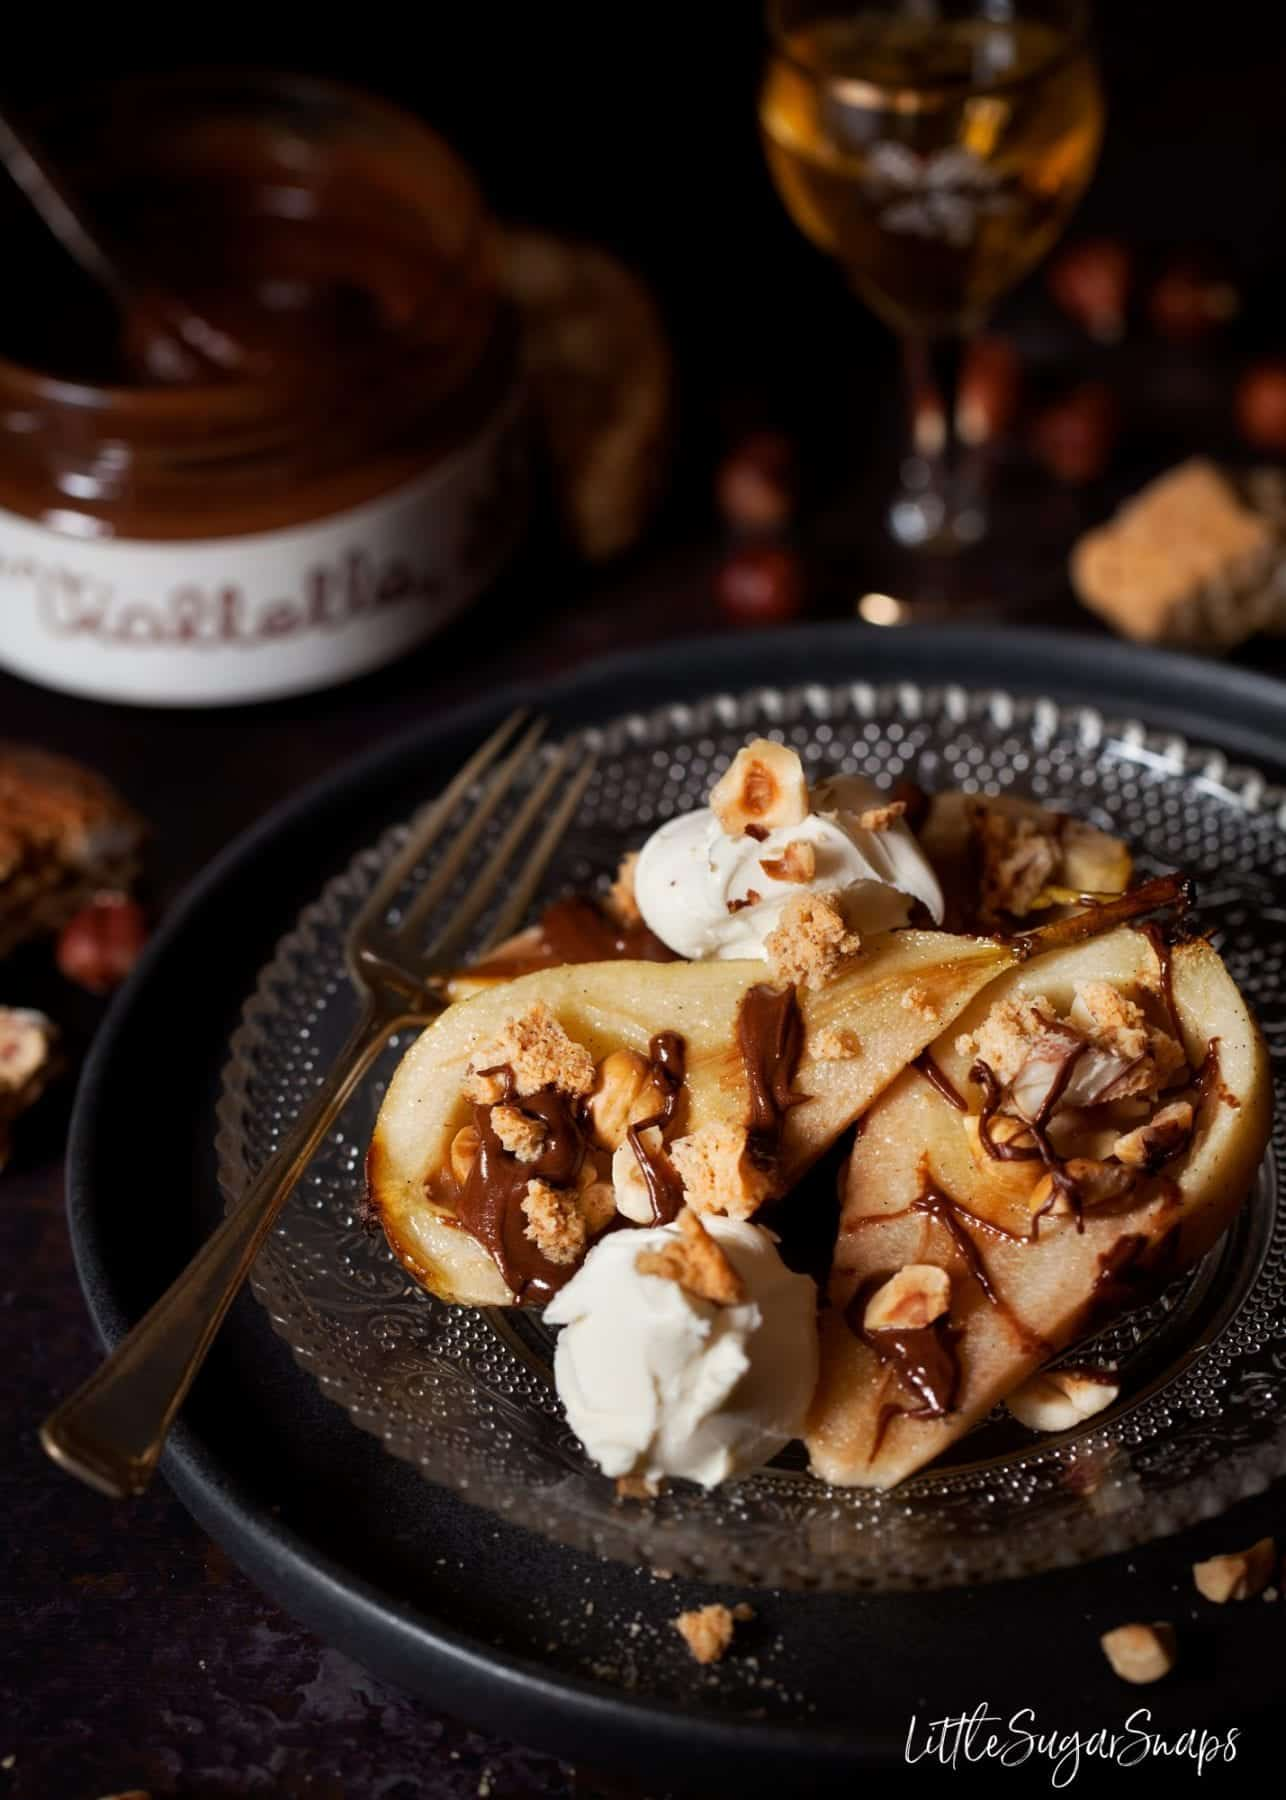 Honey Baked Pears with Chocolate, hazelnuts and cookies served on a plate with scoops of mascarpone cream cheese